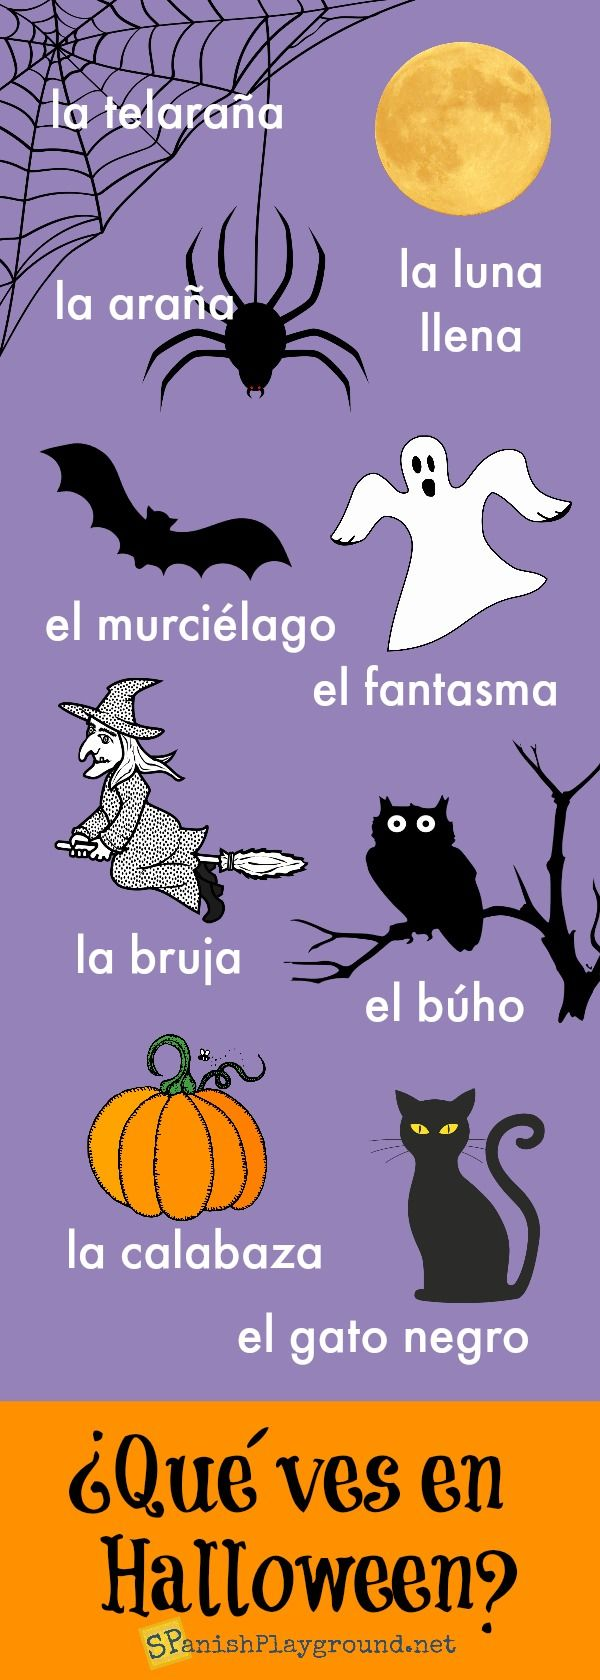 Songs, infographic, printable activities and games for Spanish Halloween learning.